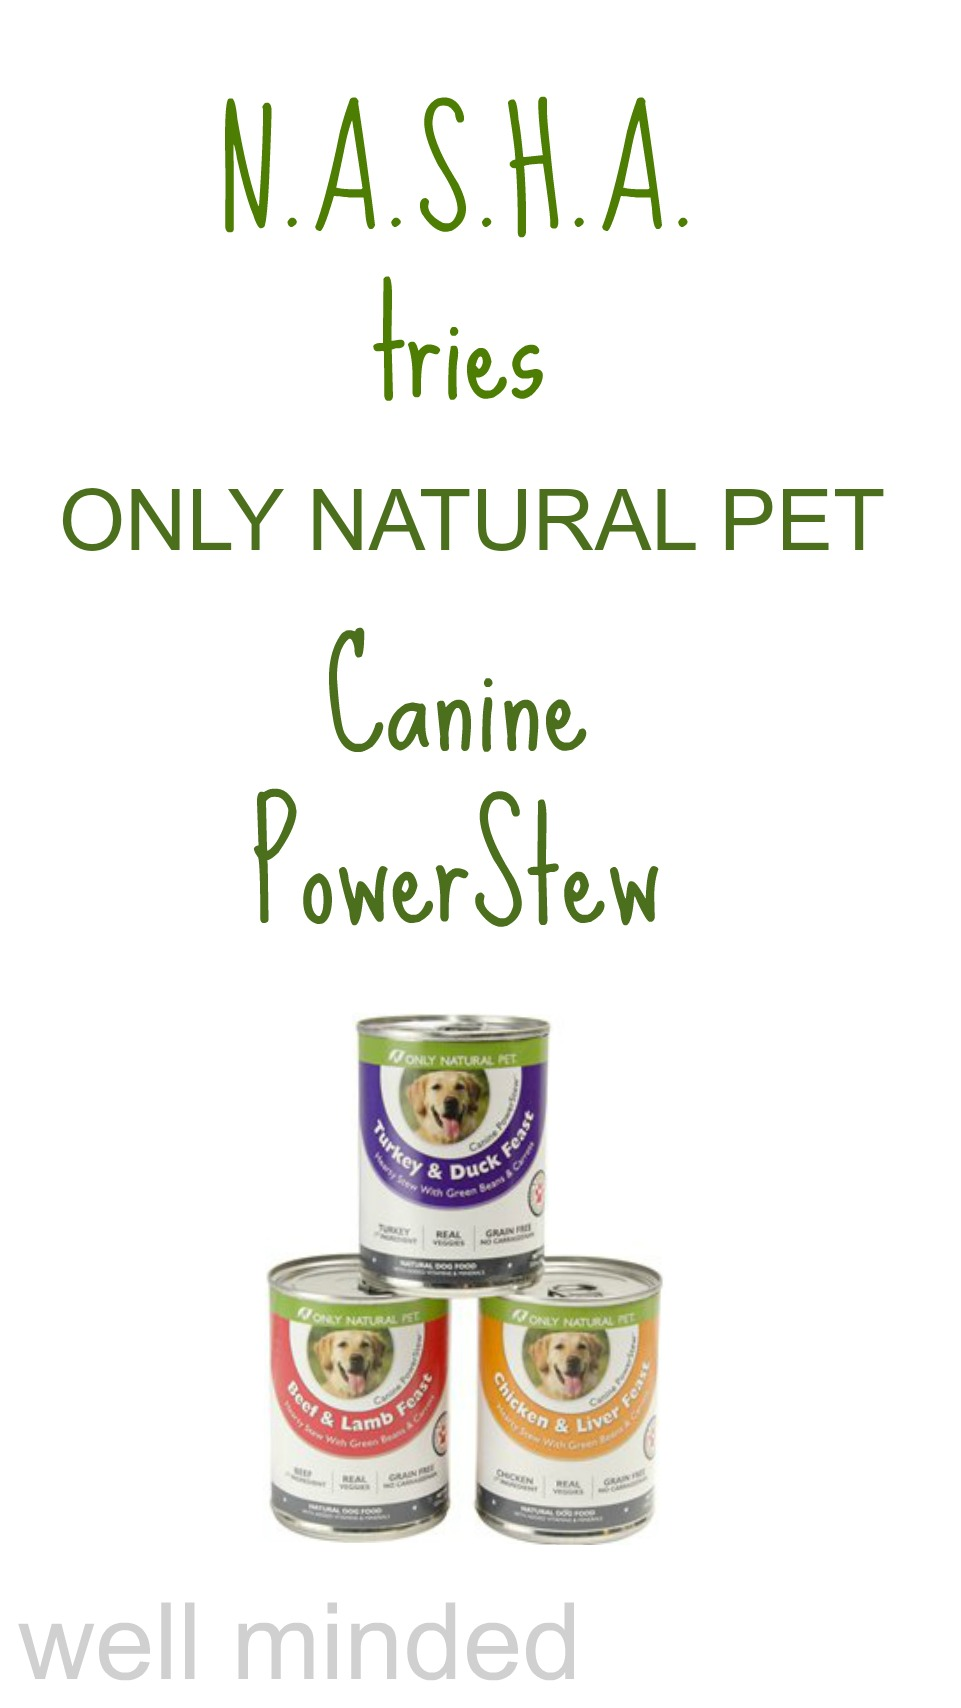 N.A.S.H.A. tries Only Natural Pet's® NEW Canine PowerStew™